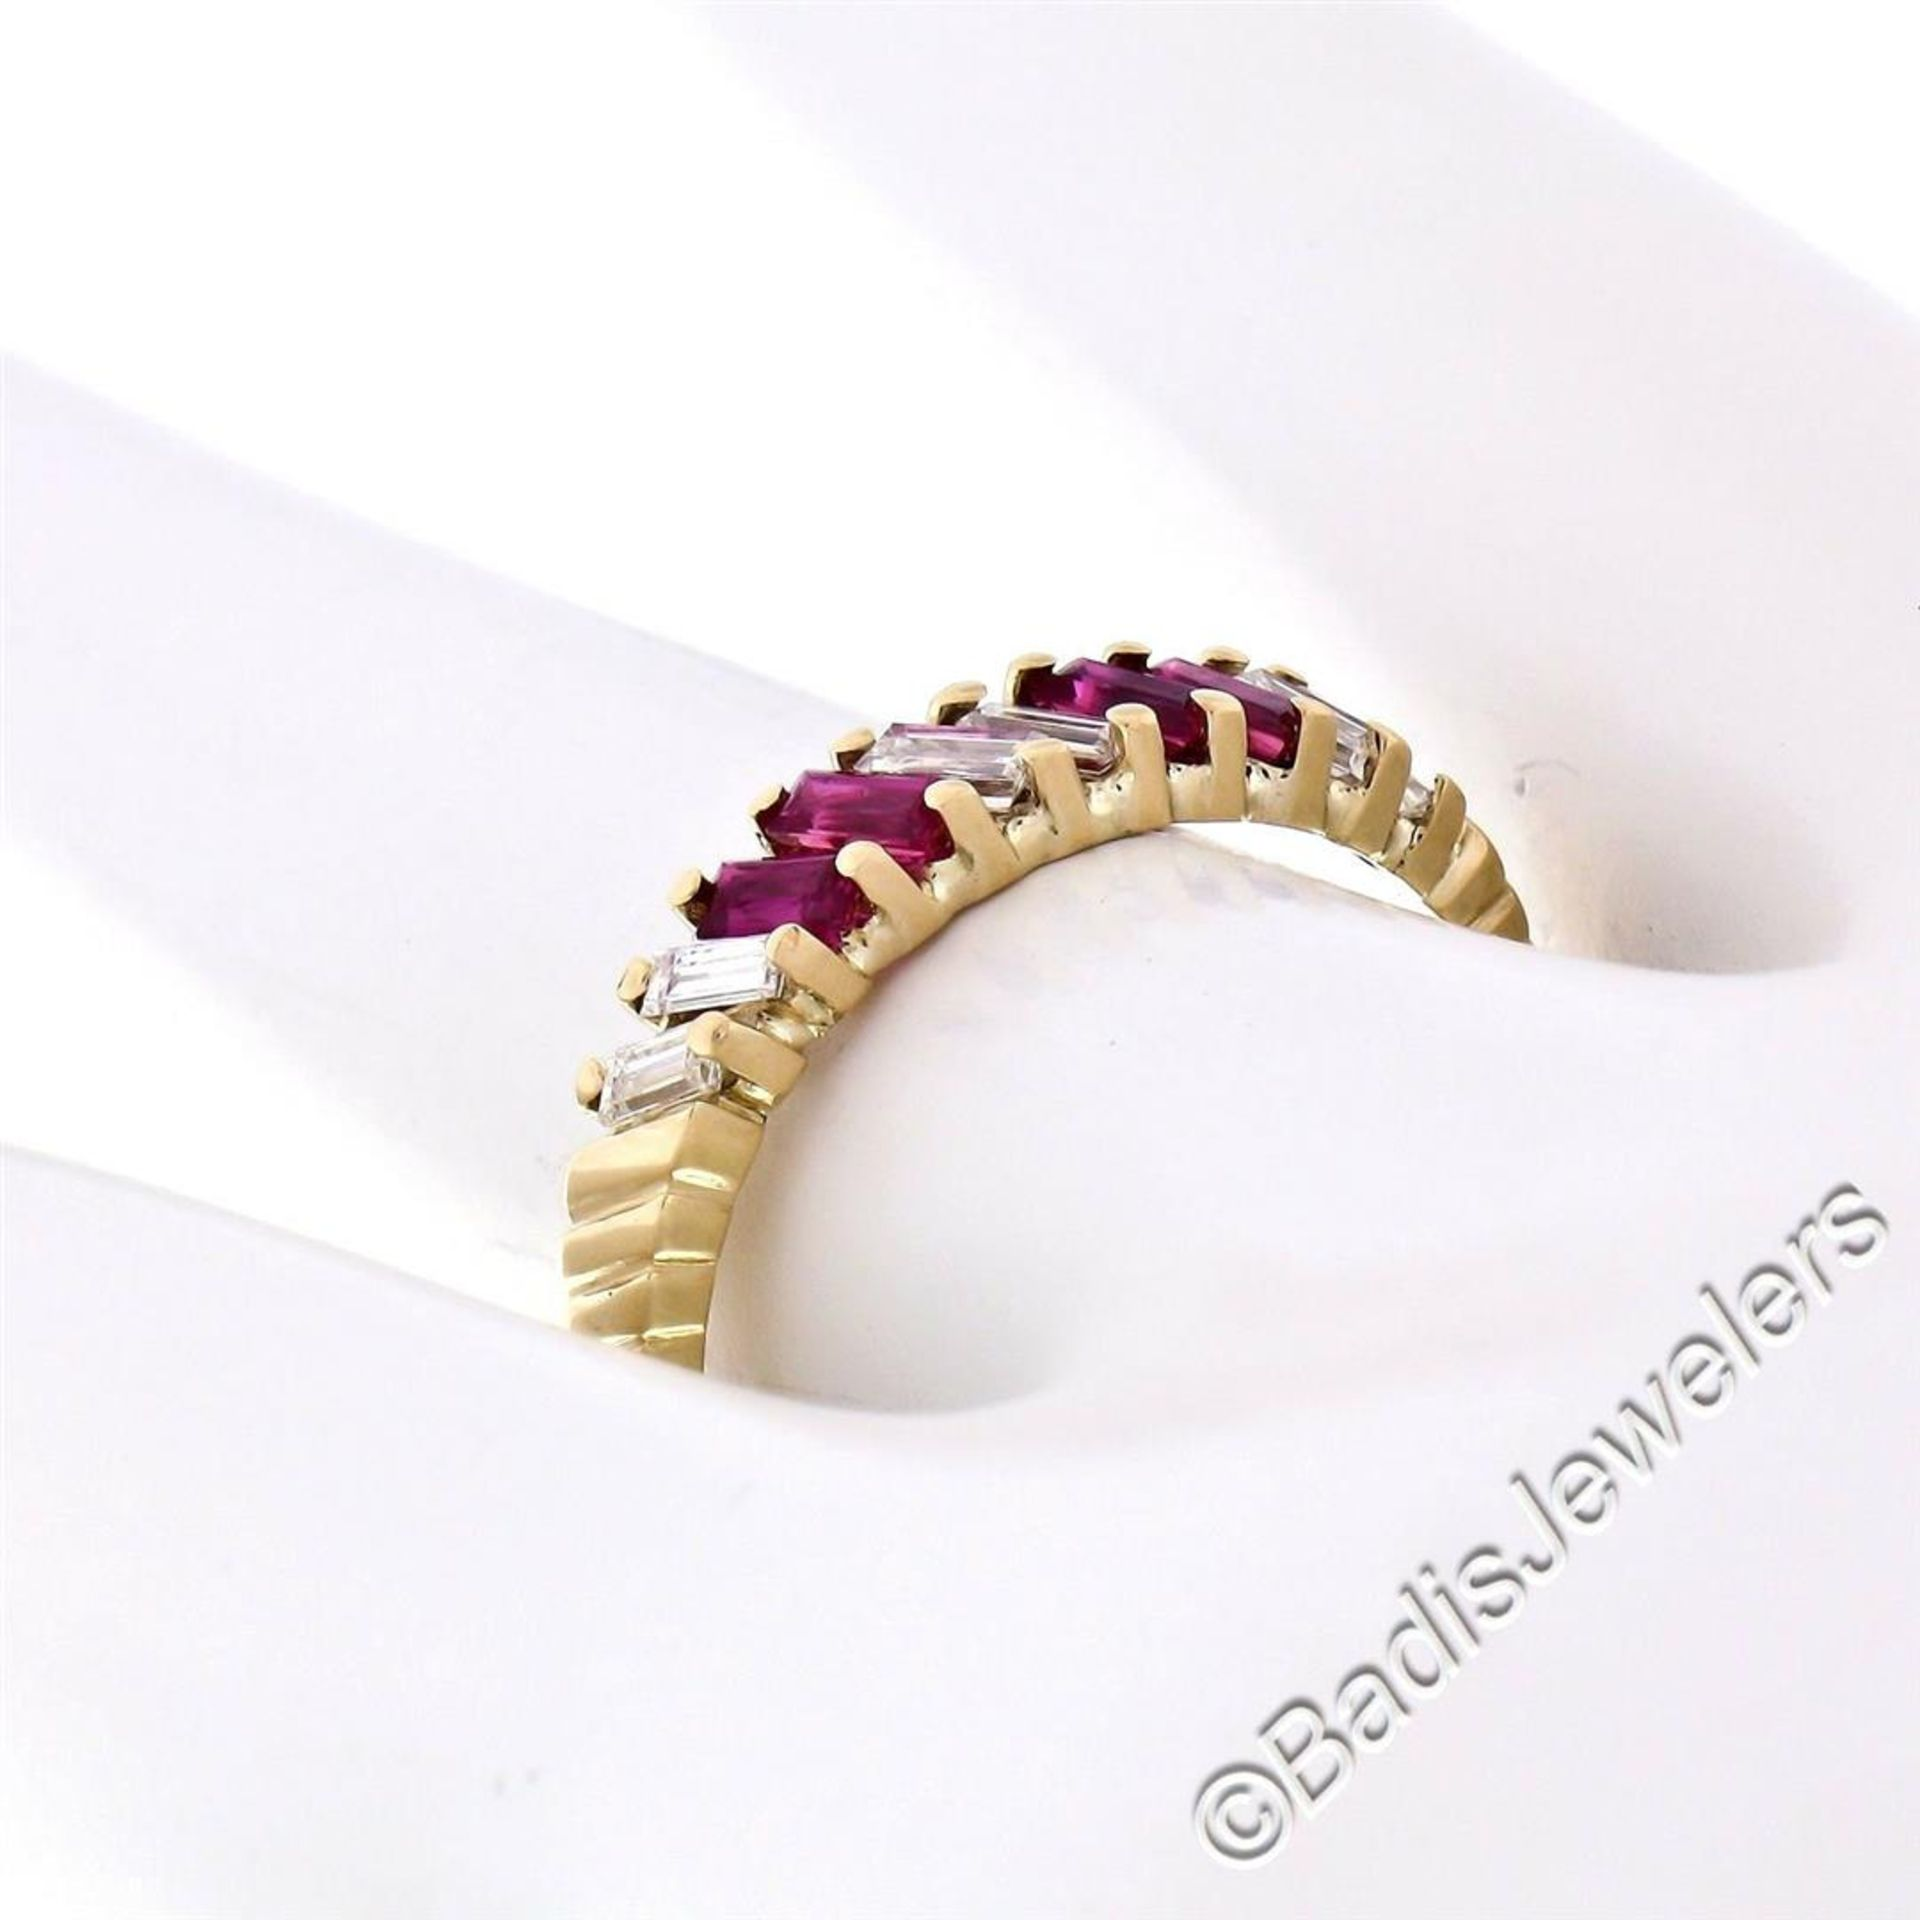 Vintage 18kt Yellow Gold 0.75ctw Baguette Diamond and Ruby Band Ring - Image 6 of 6